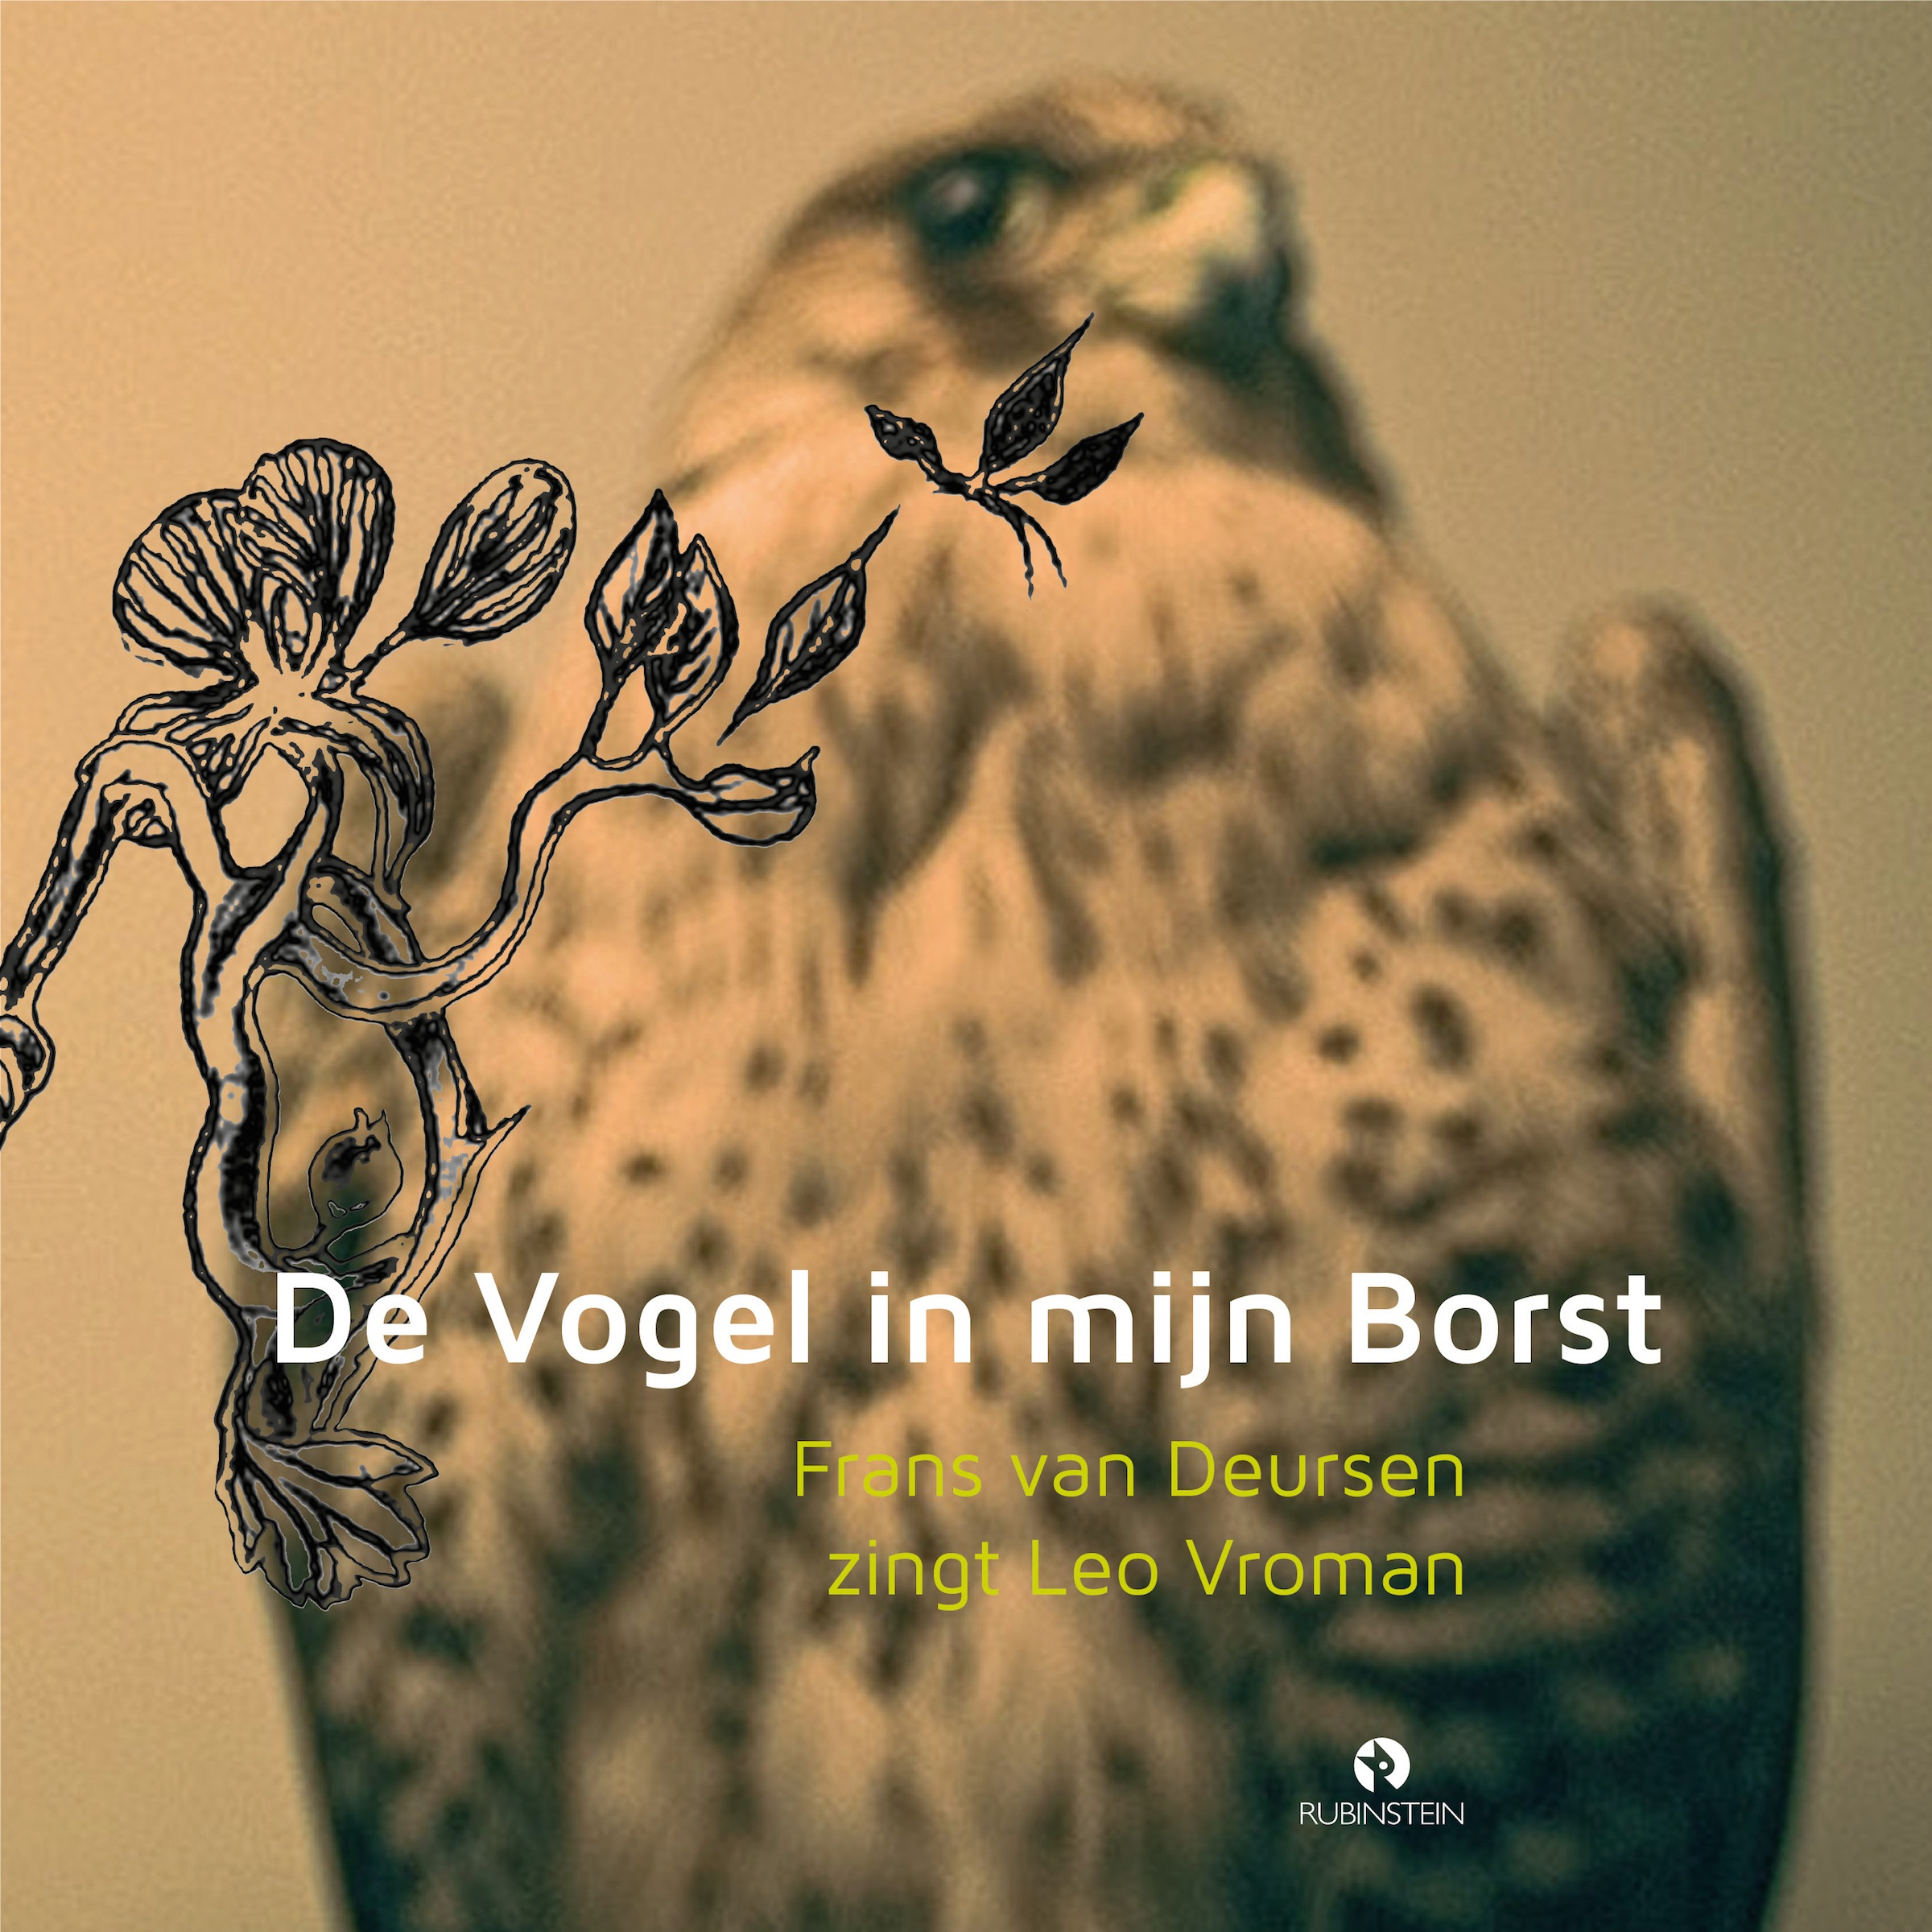 MP3 Songs Online:♫ XVI - Frans van Deursen album De vogel in mijn borst (Frans van Deursen zingt Leo Vroman). Alternative,Vocal,Music listen to music online free without downloading.